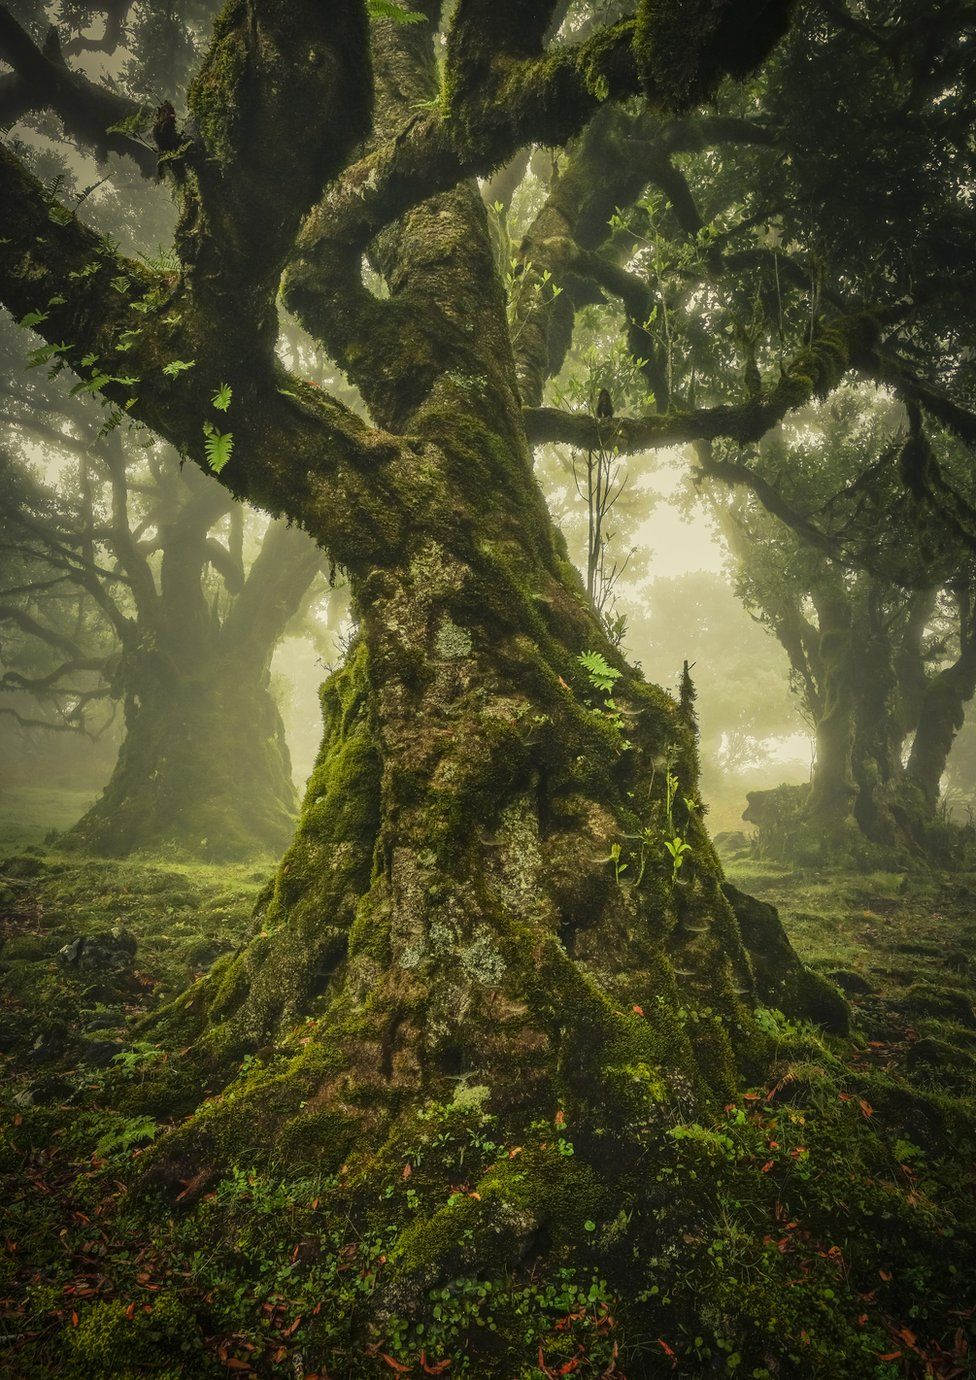 A photo of an old tree in a green forest